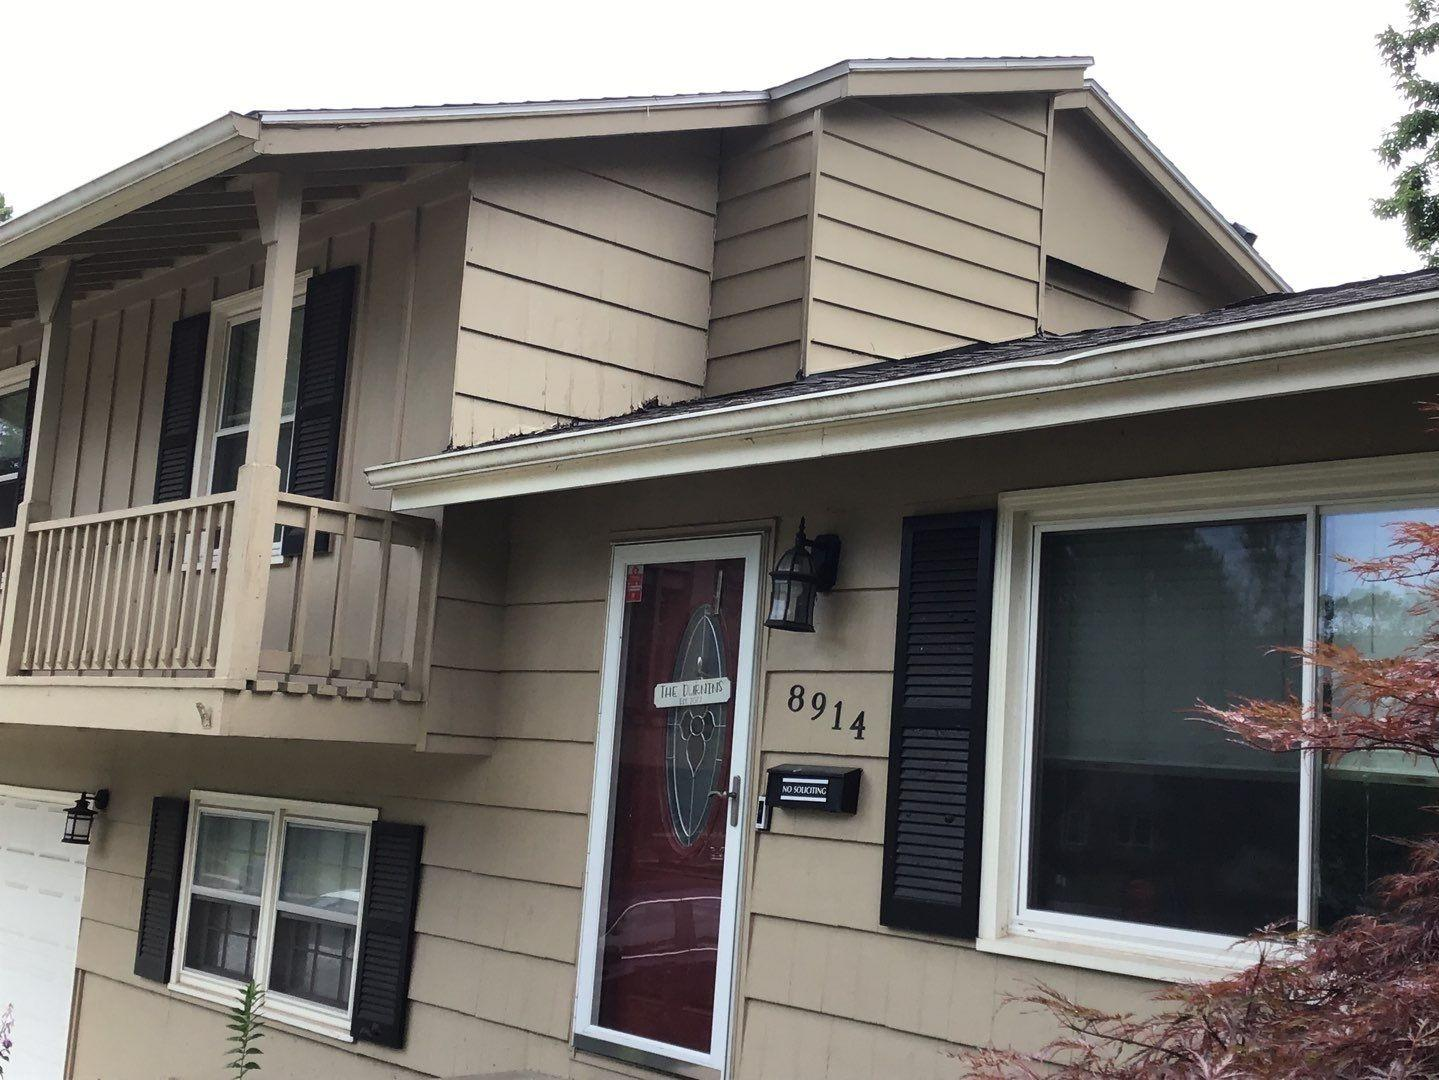 5 inch Gutters and Downspouts Installed on Home in Overland Park, KS - Before Photo